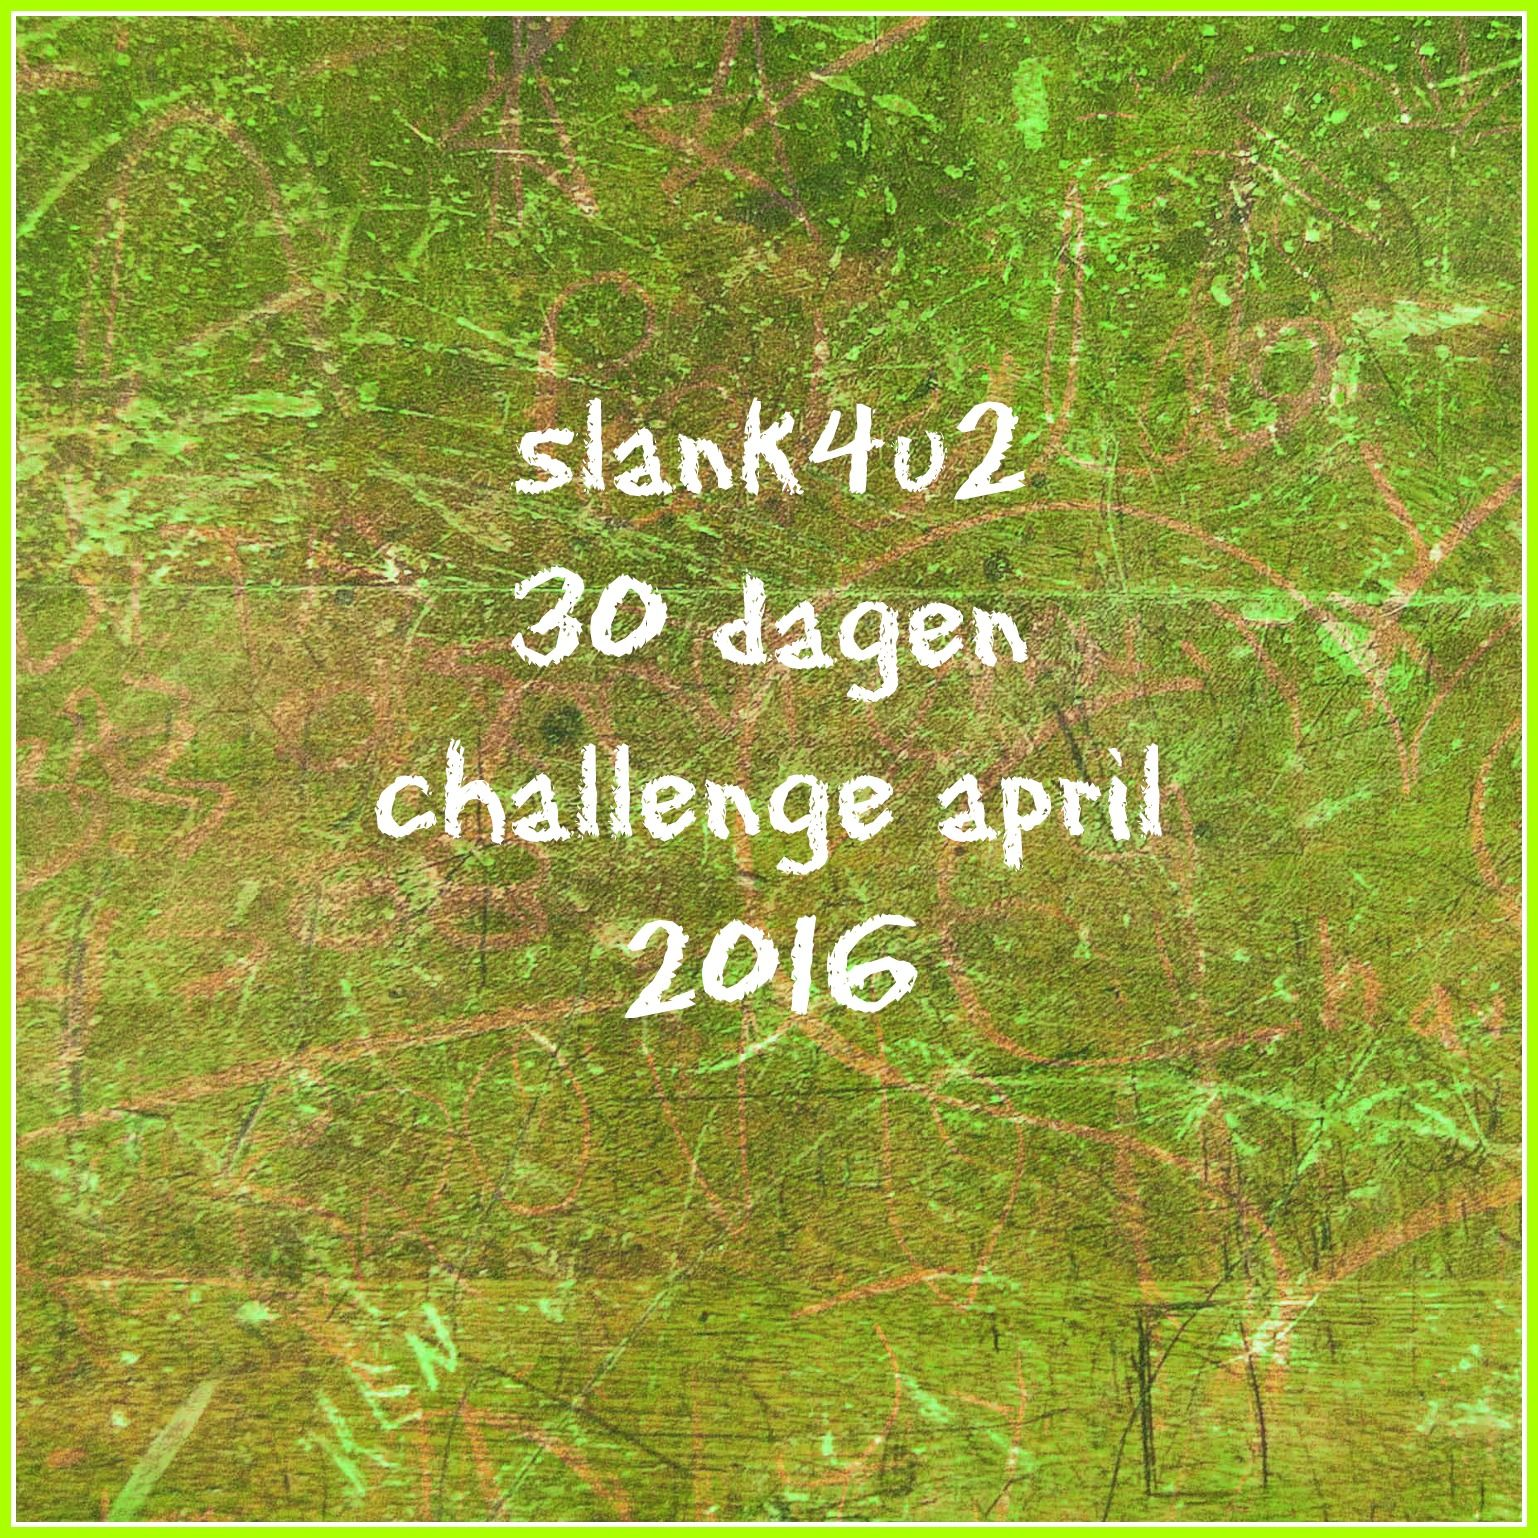 Challenge-30 dagen-april-2016-slank4u2